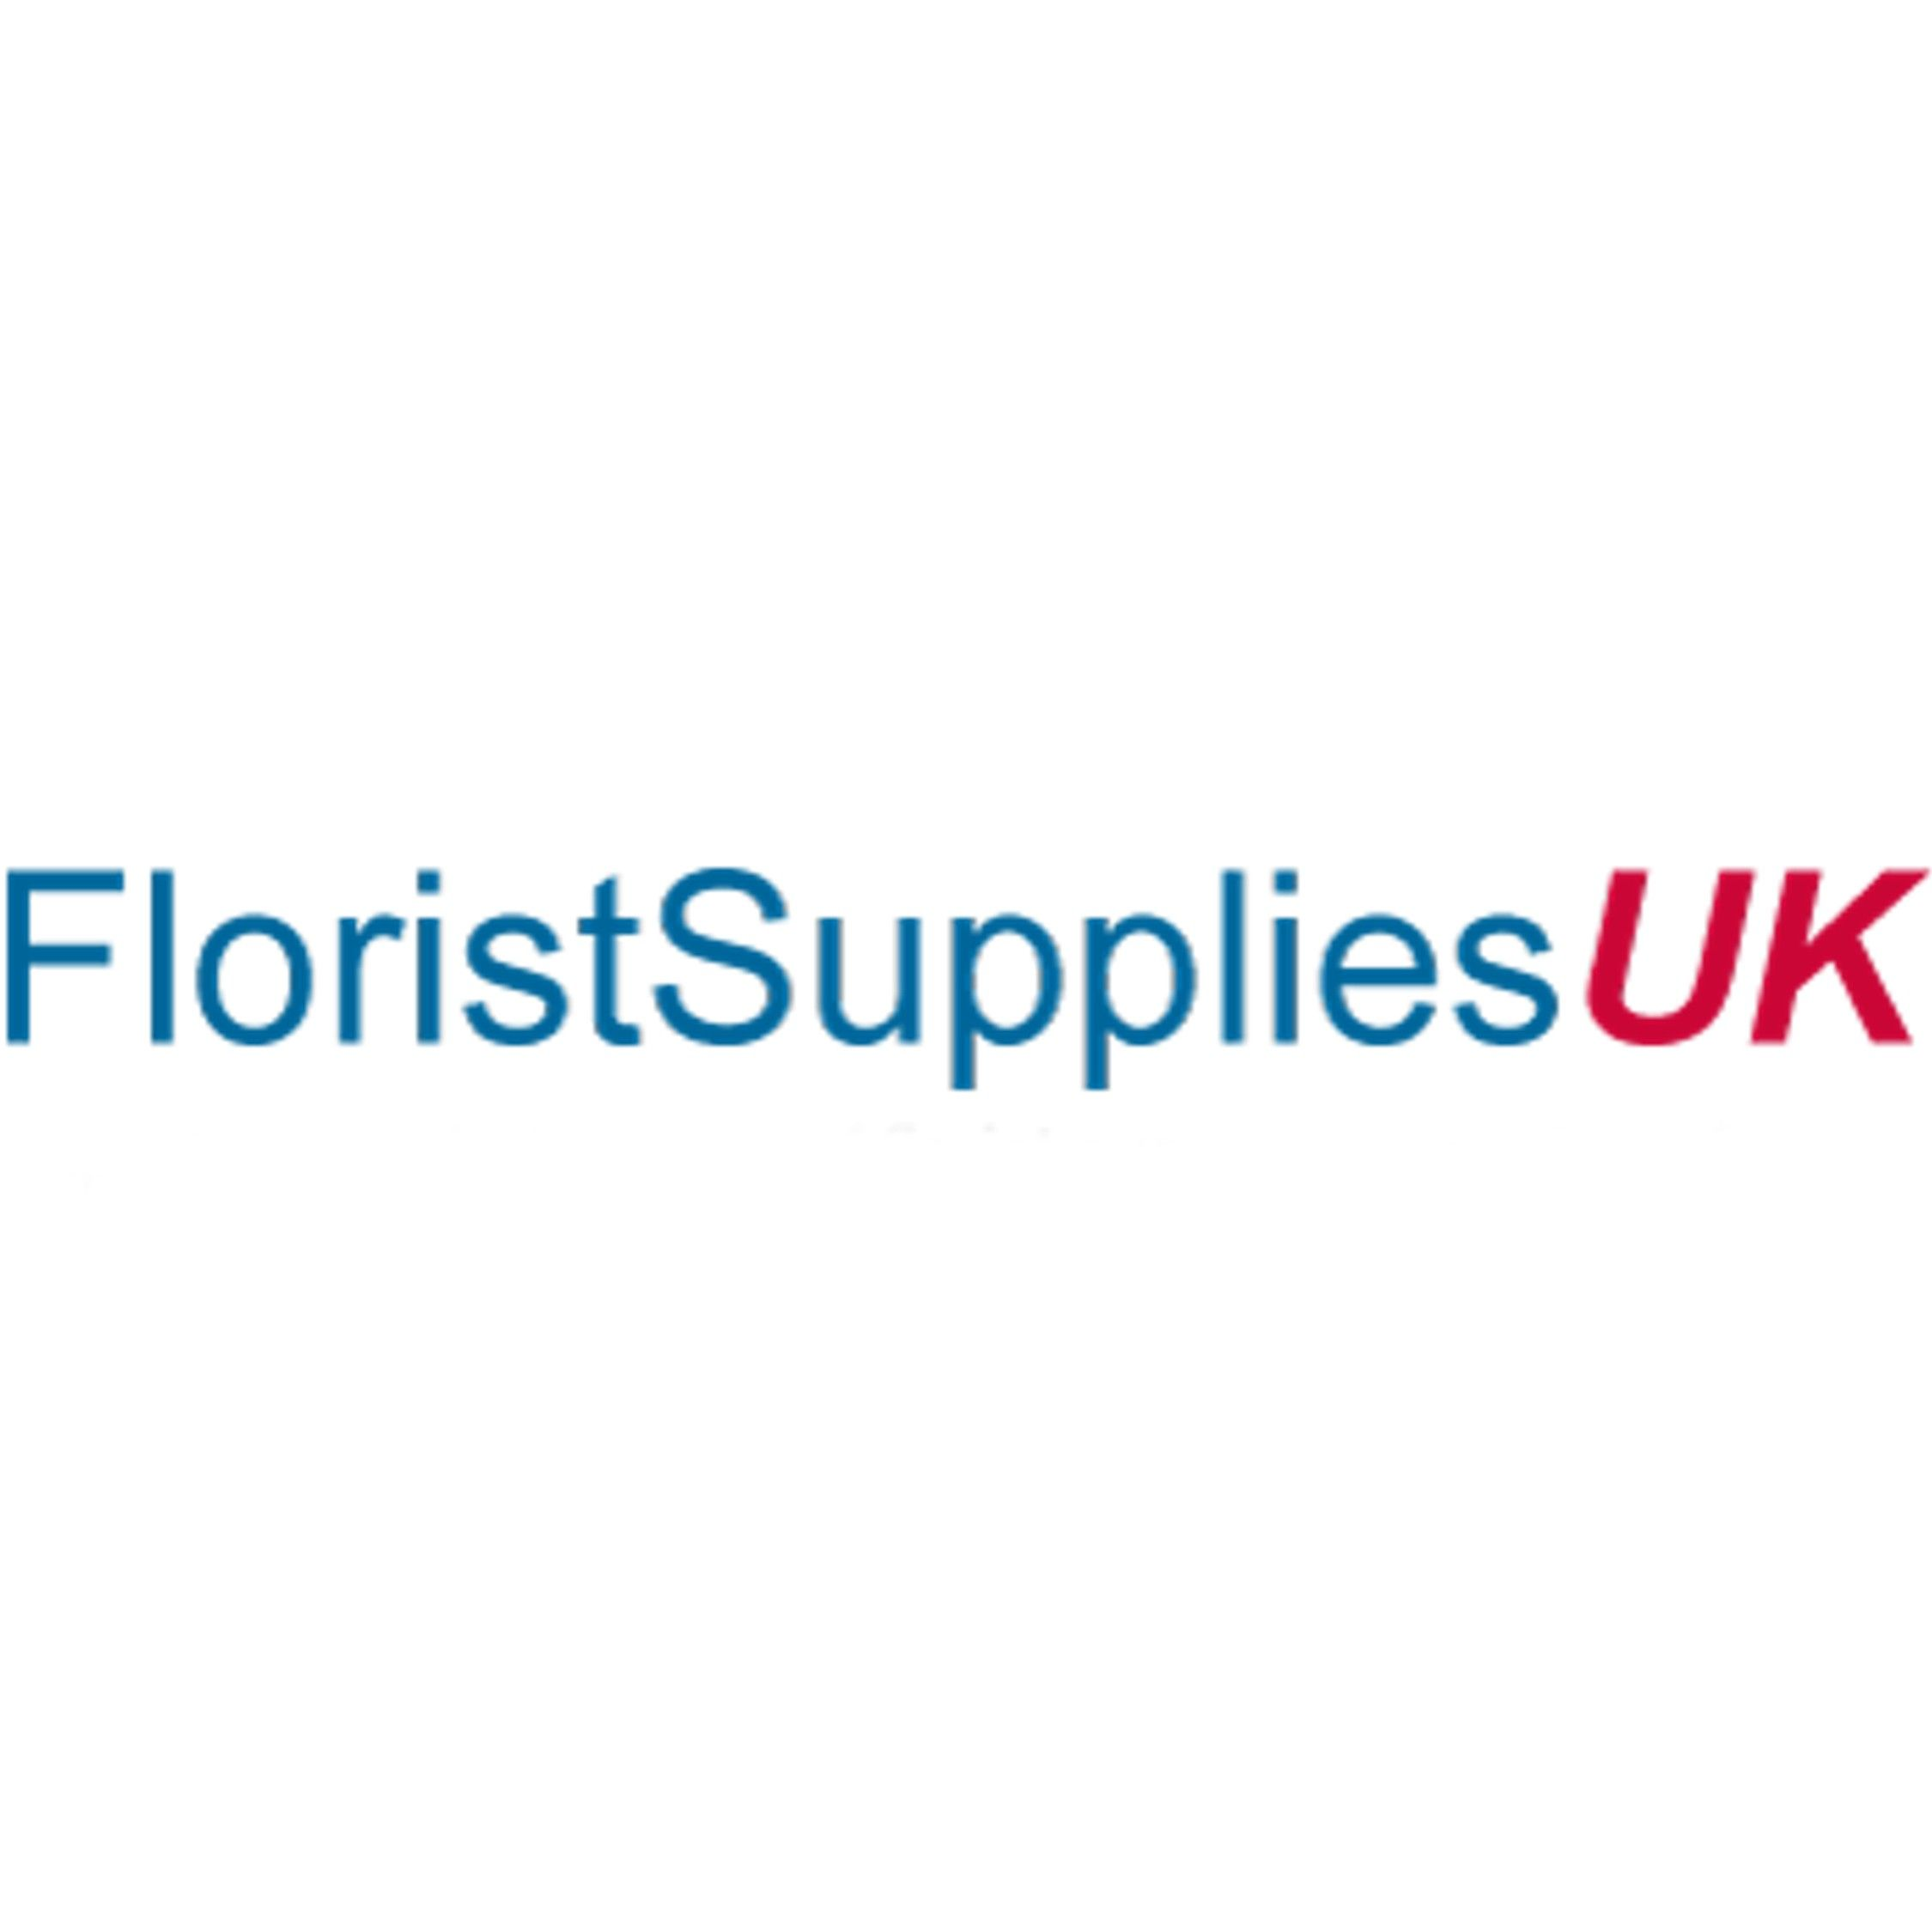 Florist Supplies UK Ltd